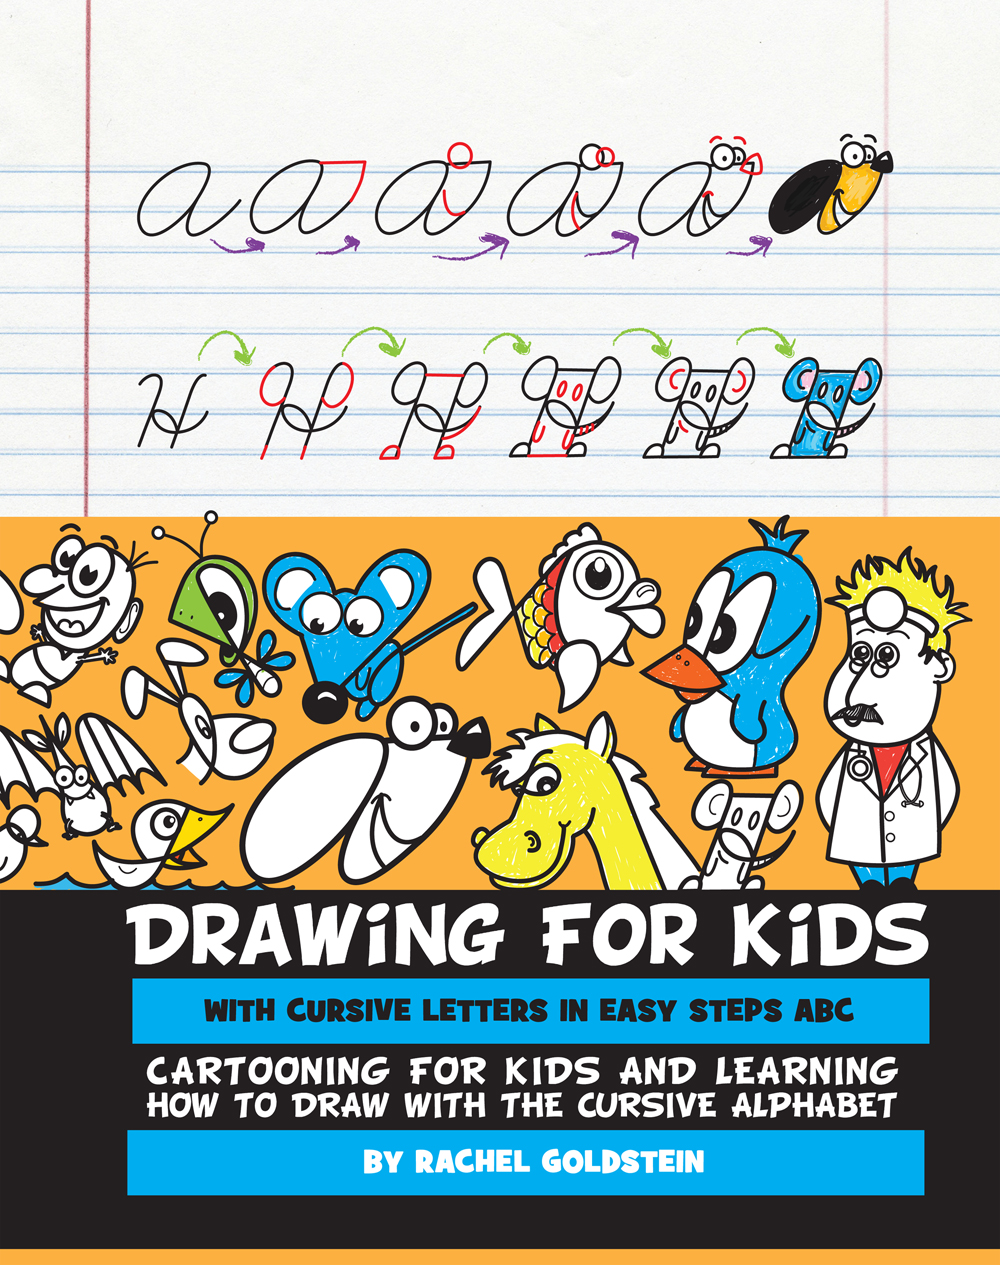 Drawing for Kids - Drawing Cursive Letter Cartoons Book